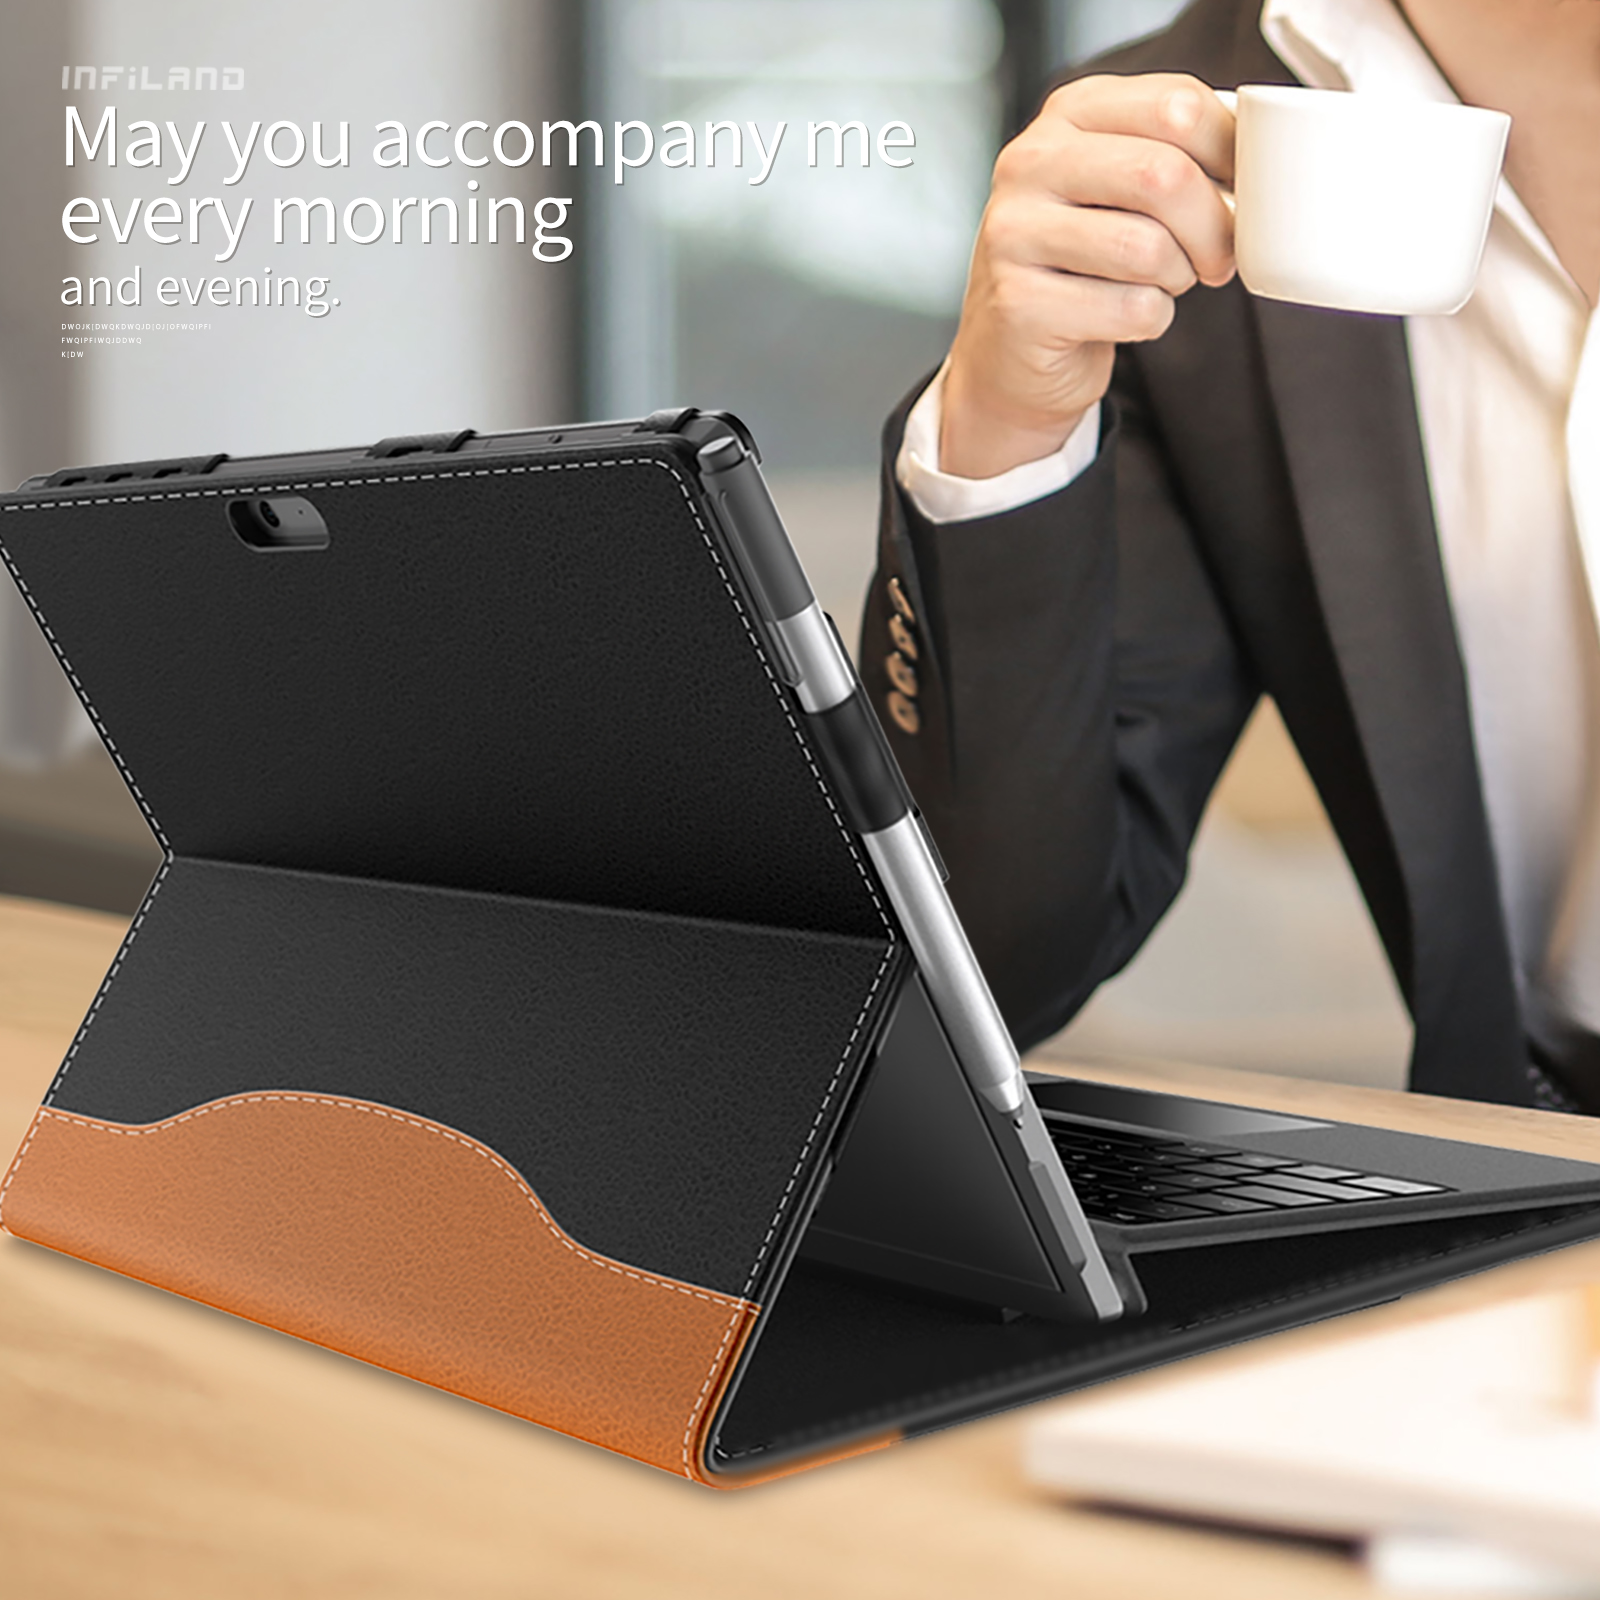 Infiland Case, Multi-Angle Business Cover Built in Pocket for Surface Pro 4/Surface Pro 6/Surface Pro 7 2019 New release